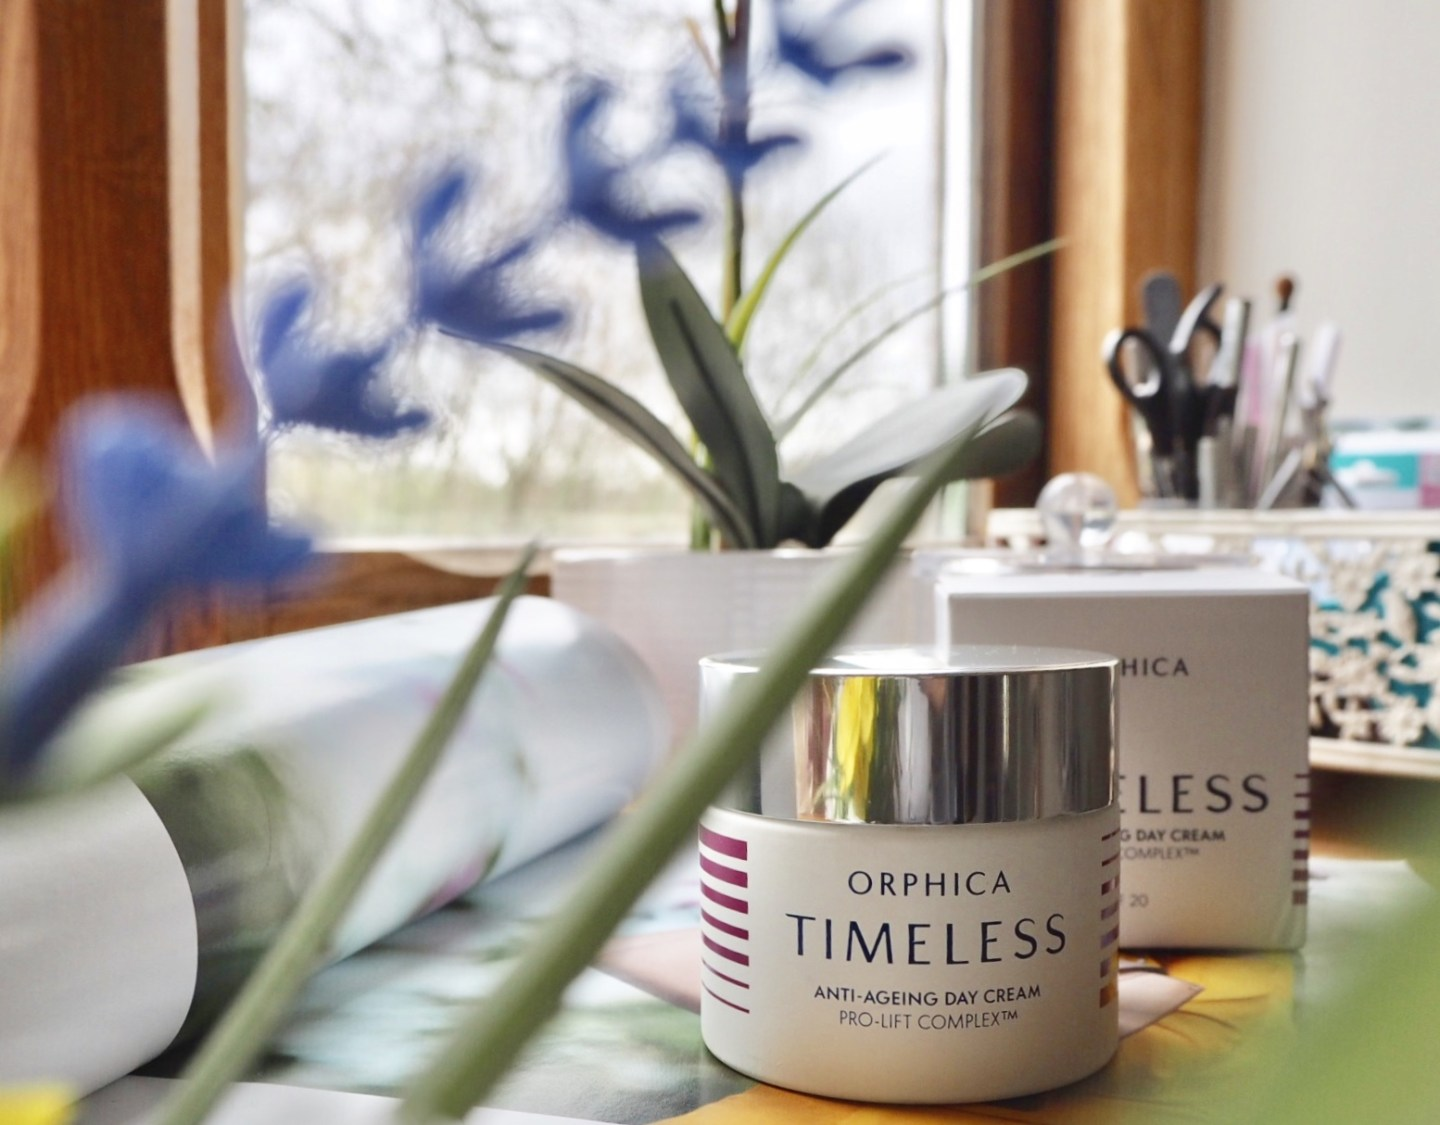 Timeless day cream. Skincare by Orphica